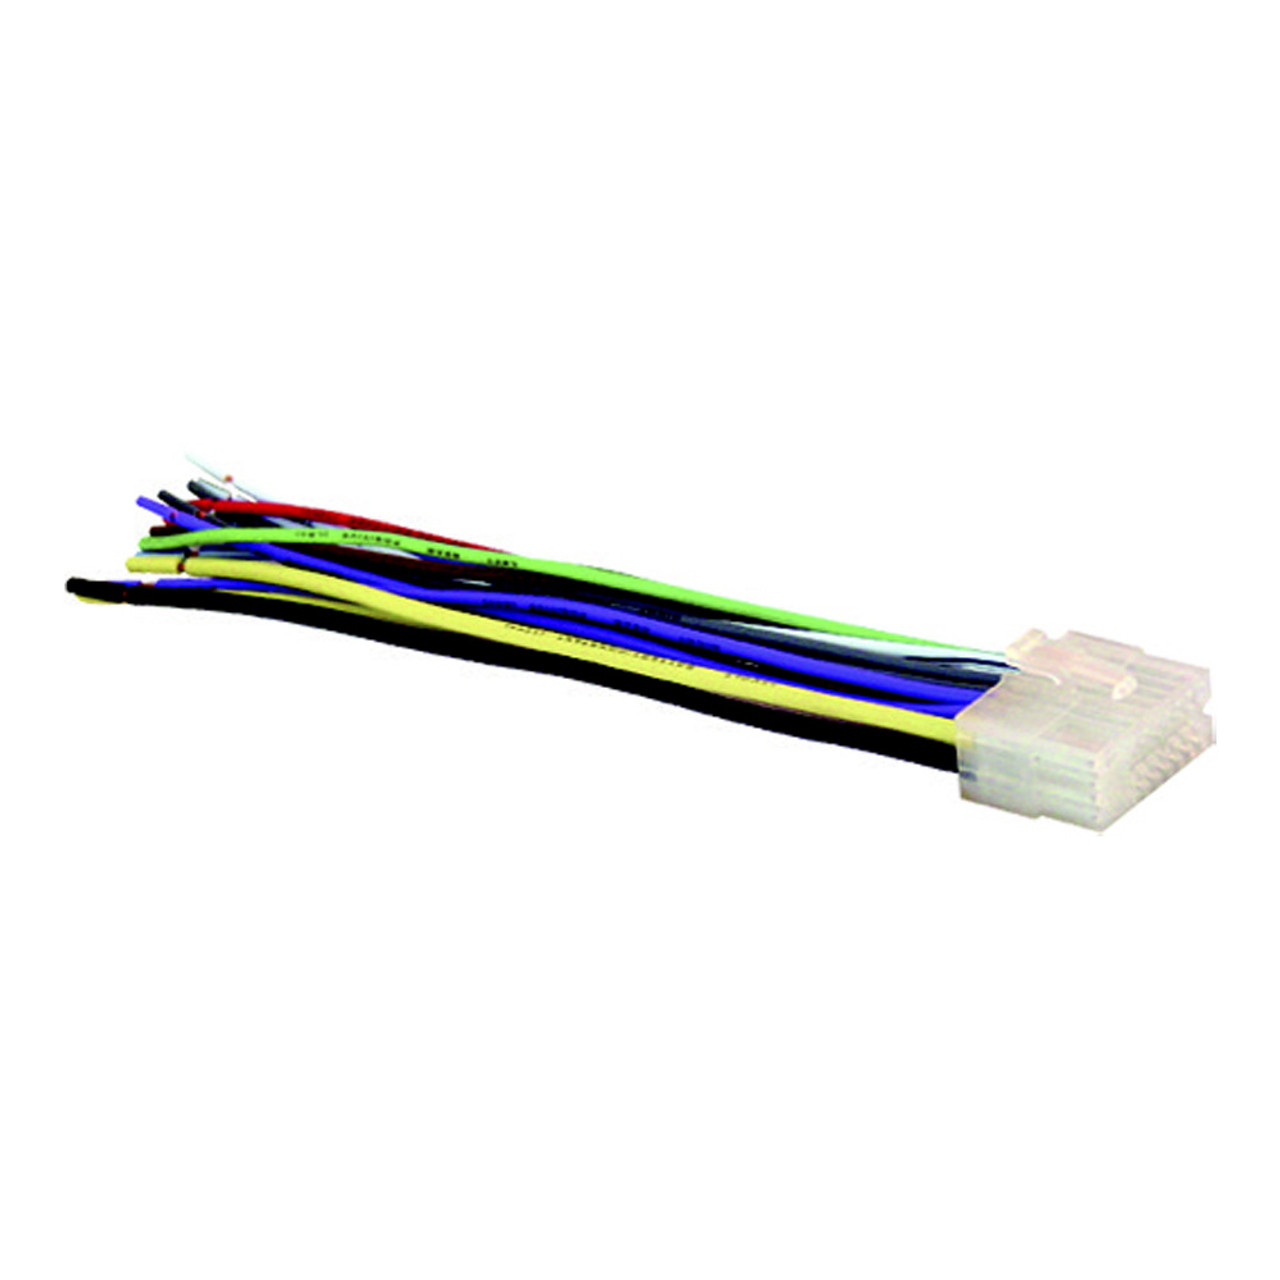 hight resolution of wiring harness clarion 16 pin cl1602 2002 xscorpion wiring harness pioneer 16 pin 20032004 xscorpion join the